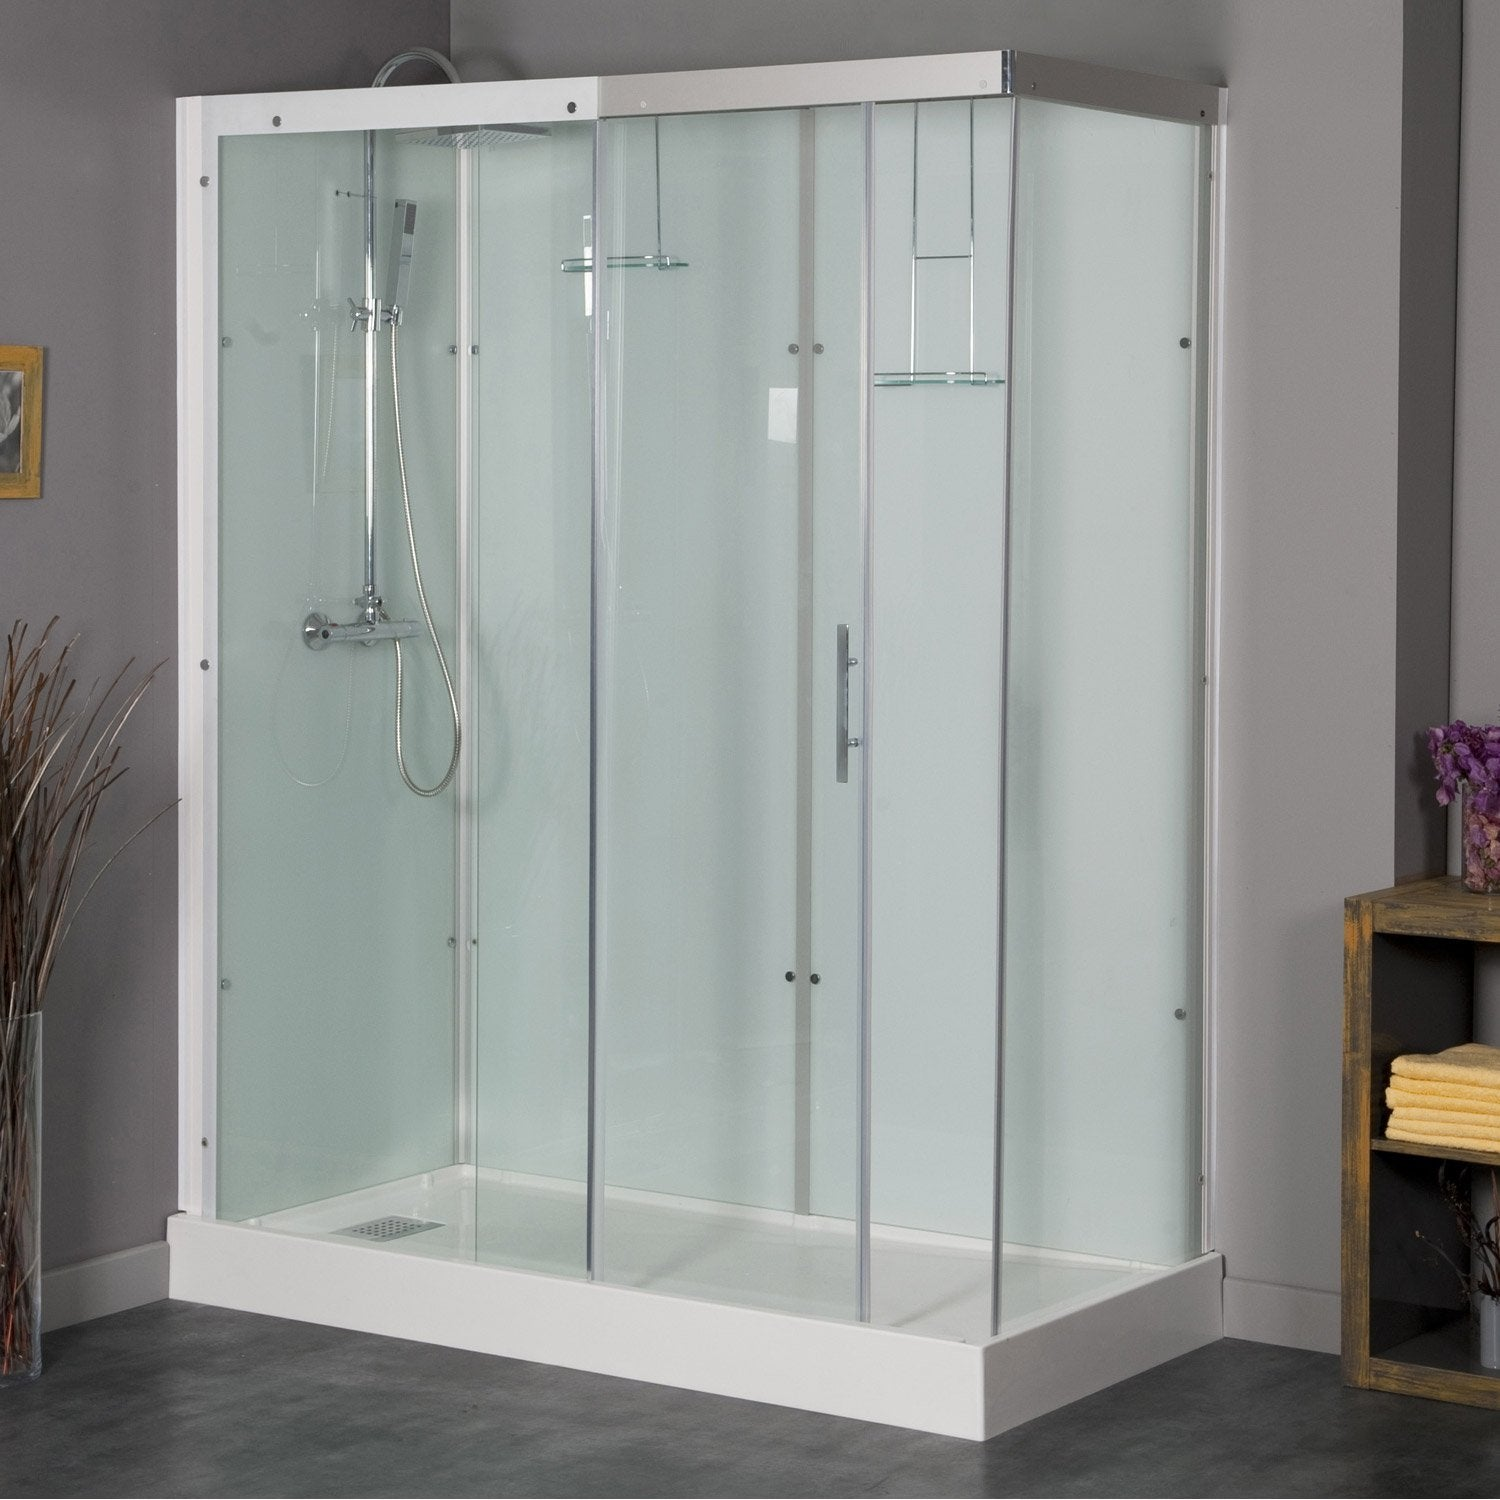 cabine de douche rectangulaire 160x80 cm thalaglass 2 thermo leroy merlin. Black Bedroom Furniture Sets. Home Design Ideas